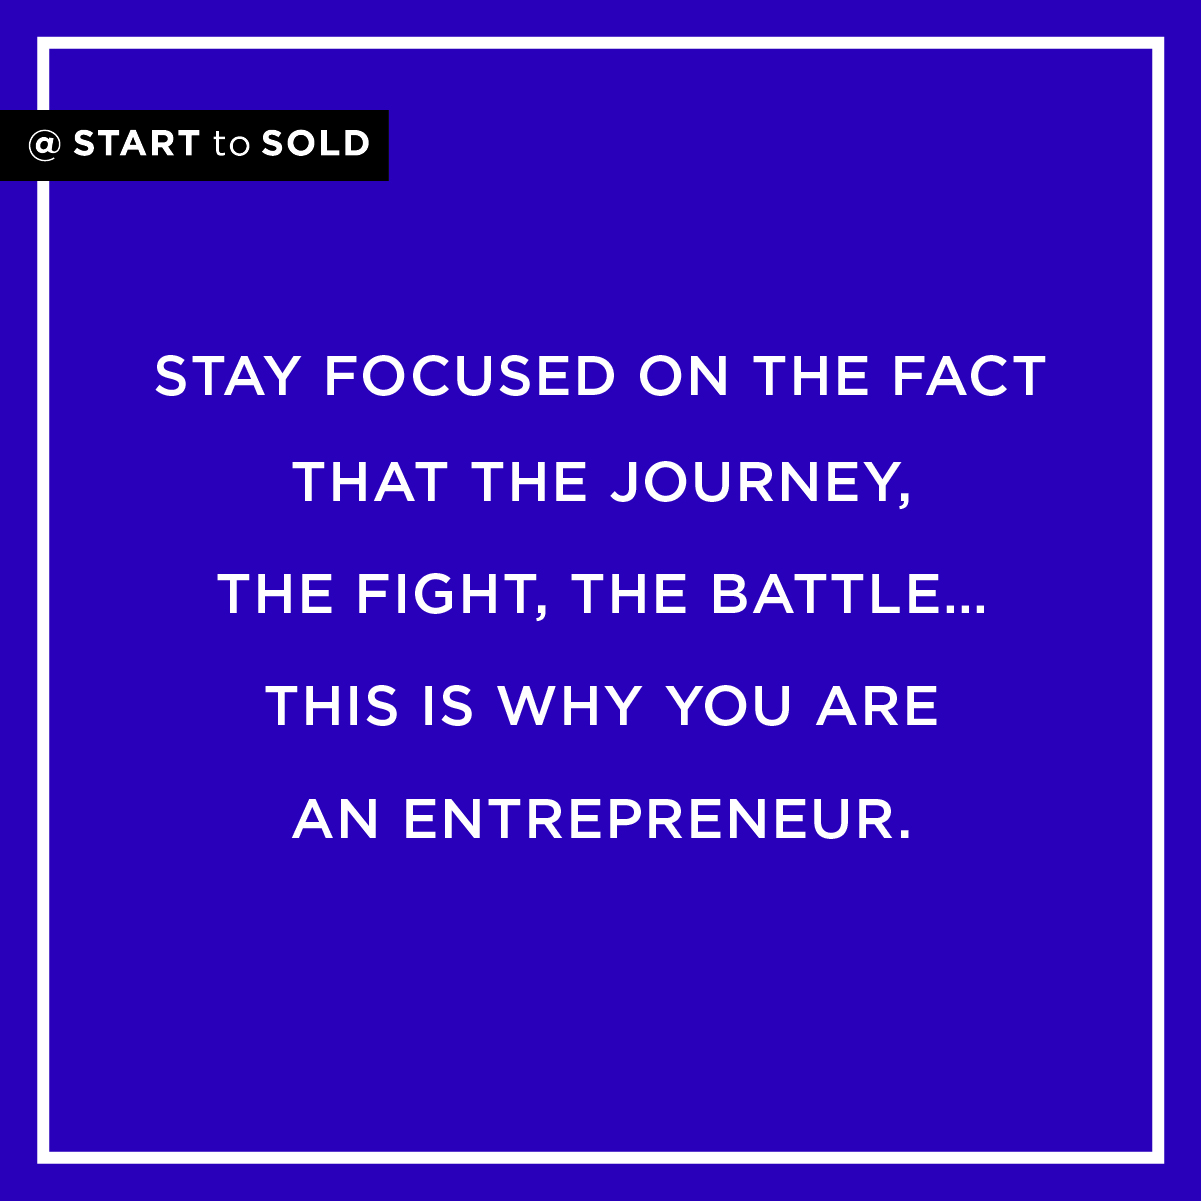 Becoming an entrepreneur is a journey and a battle. You have to stay focused on why you are an entrepreneur.